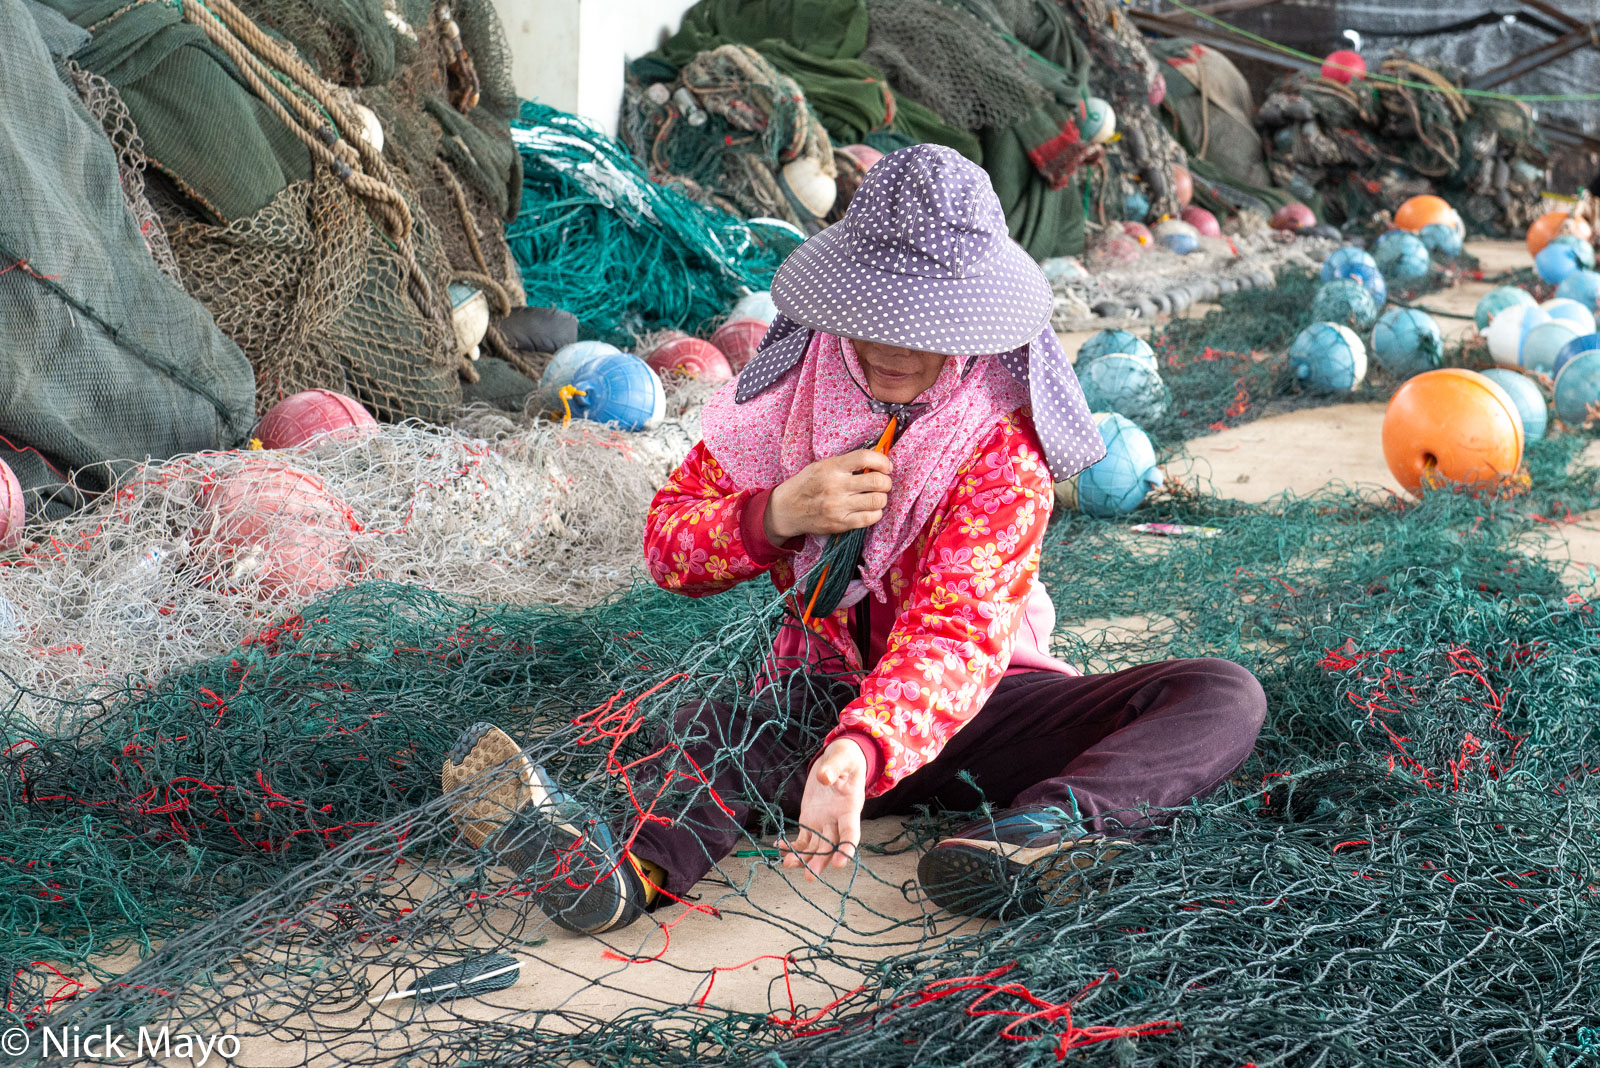 Repairing fishing nets at Wai'an port.